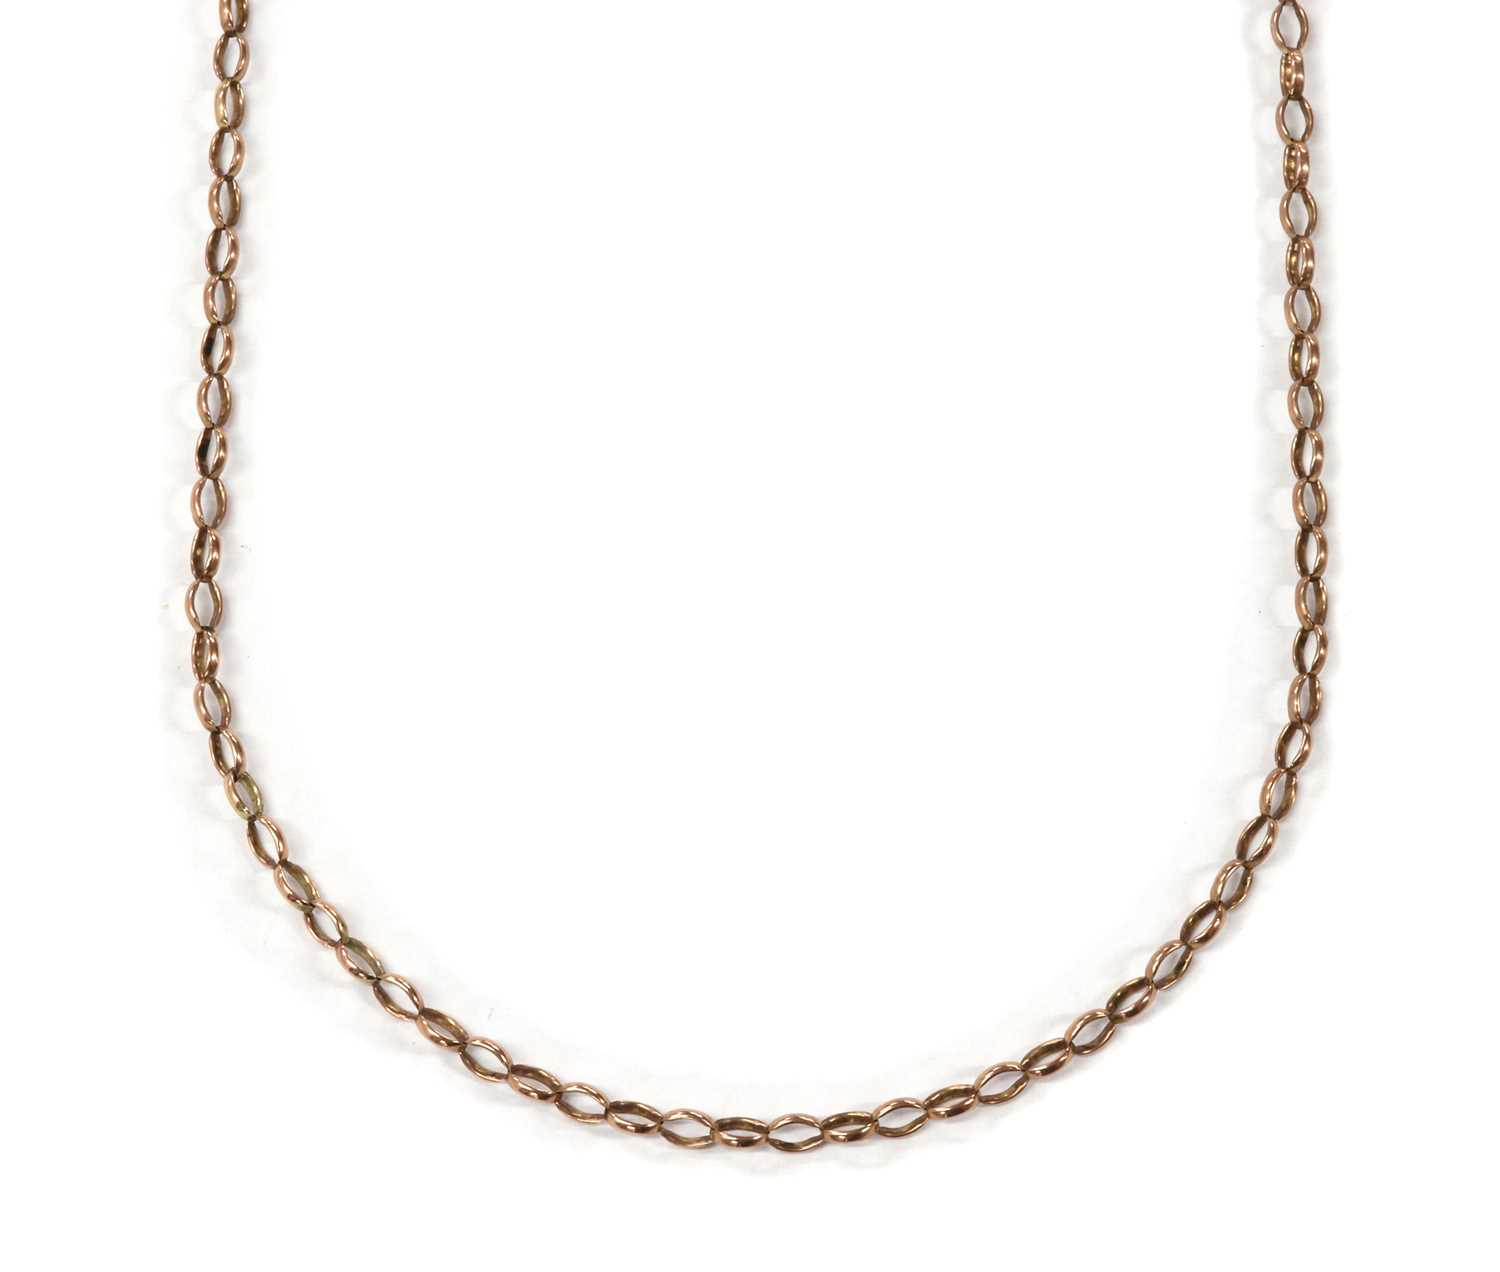 A gold oval belcher link chain,